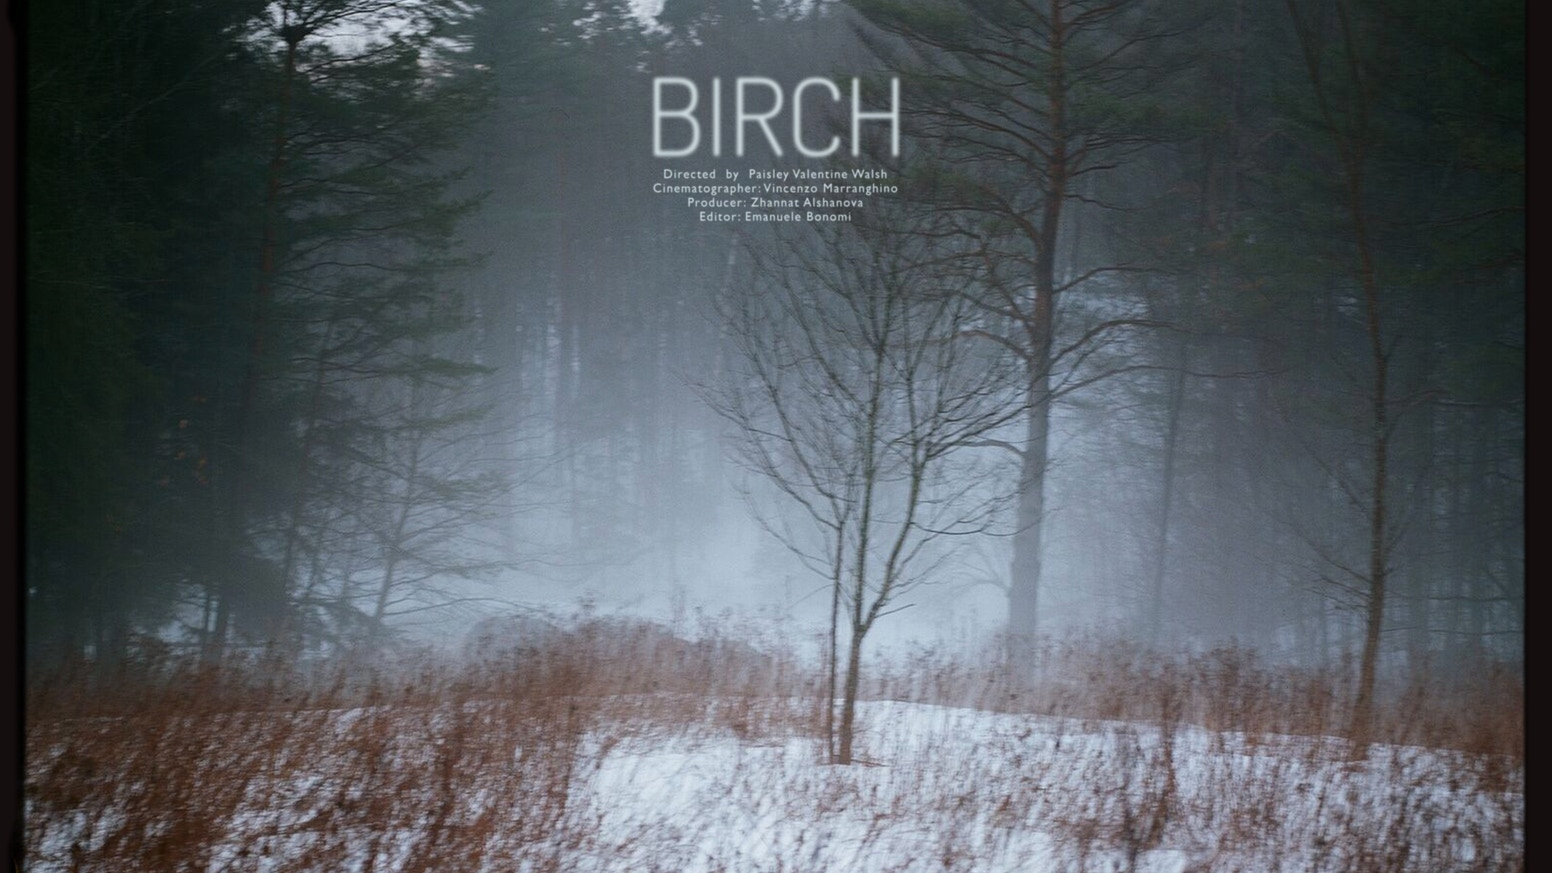 """""""Birch"""" is an investigation of memory, set in the backwoods of Vermont, shot through the coldest days of winter."""